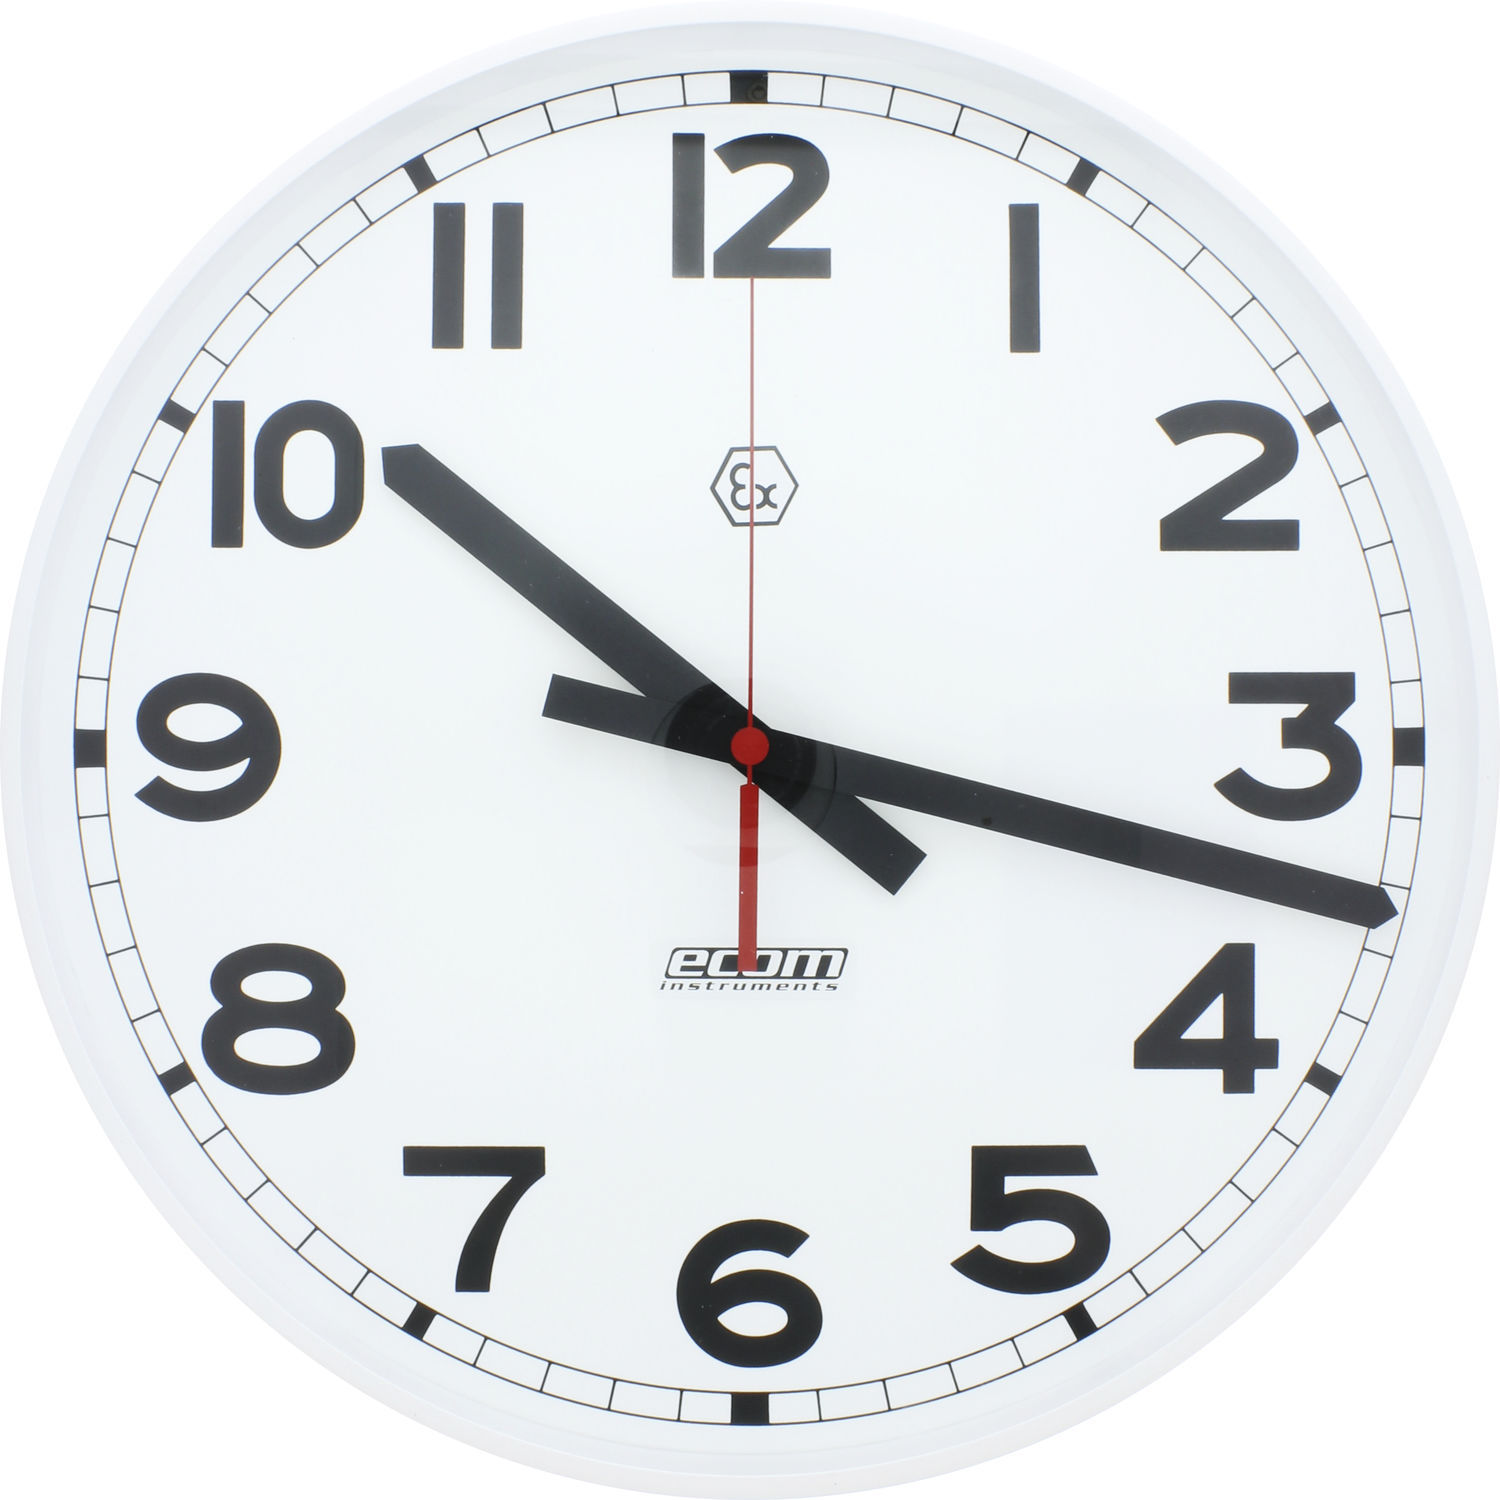 Wall-mounted clock / intrinsically safe / analog - Ex-Time